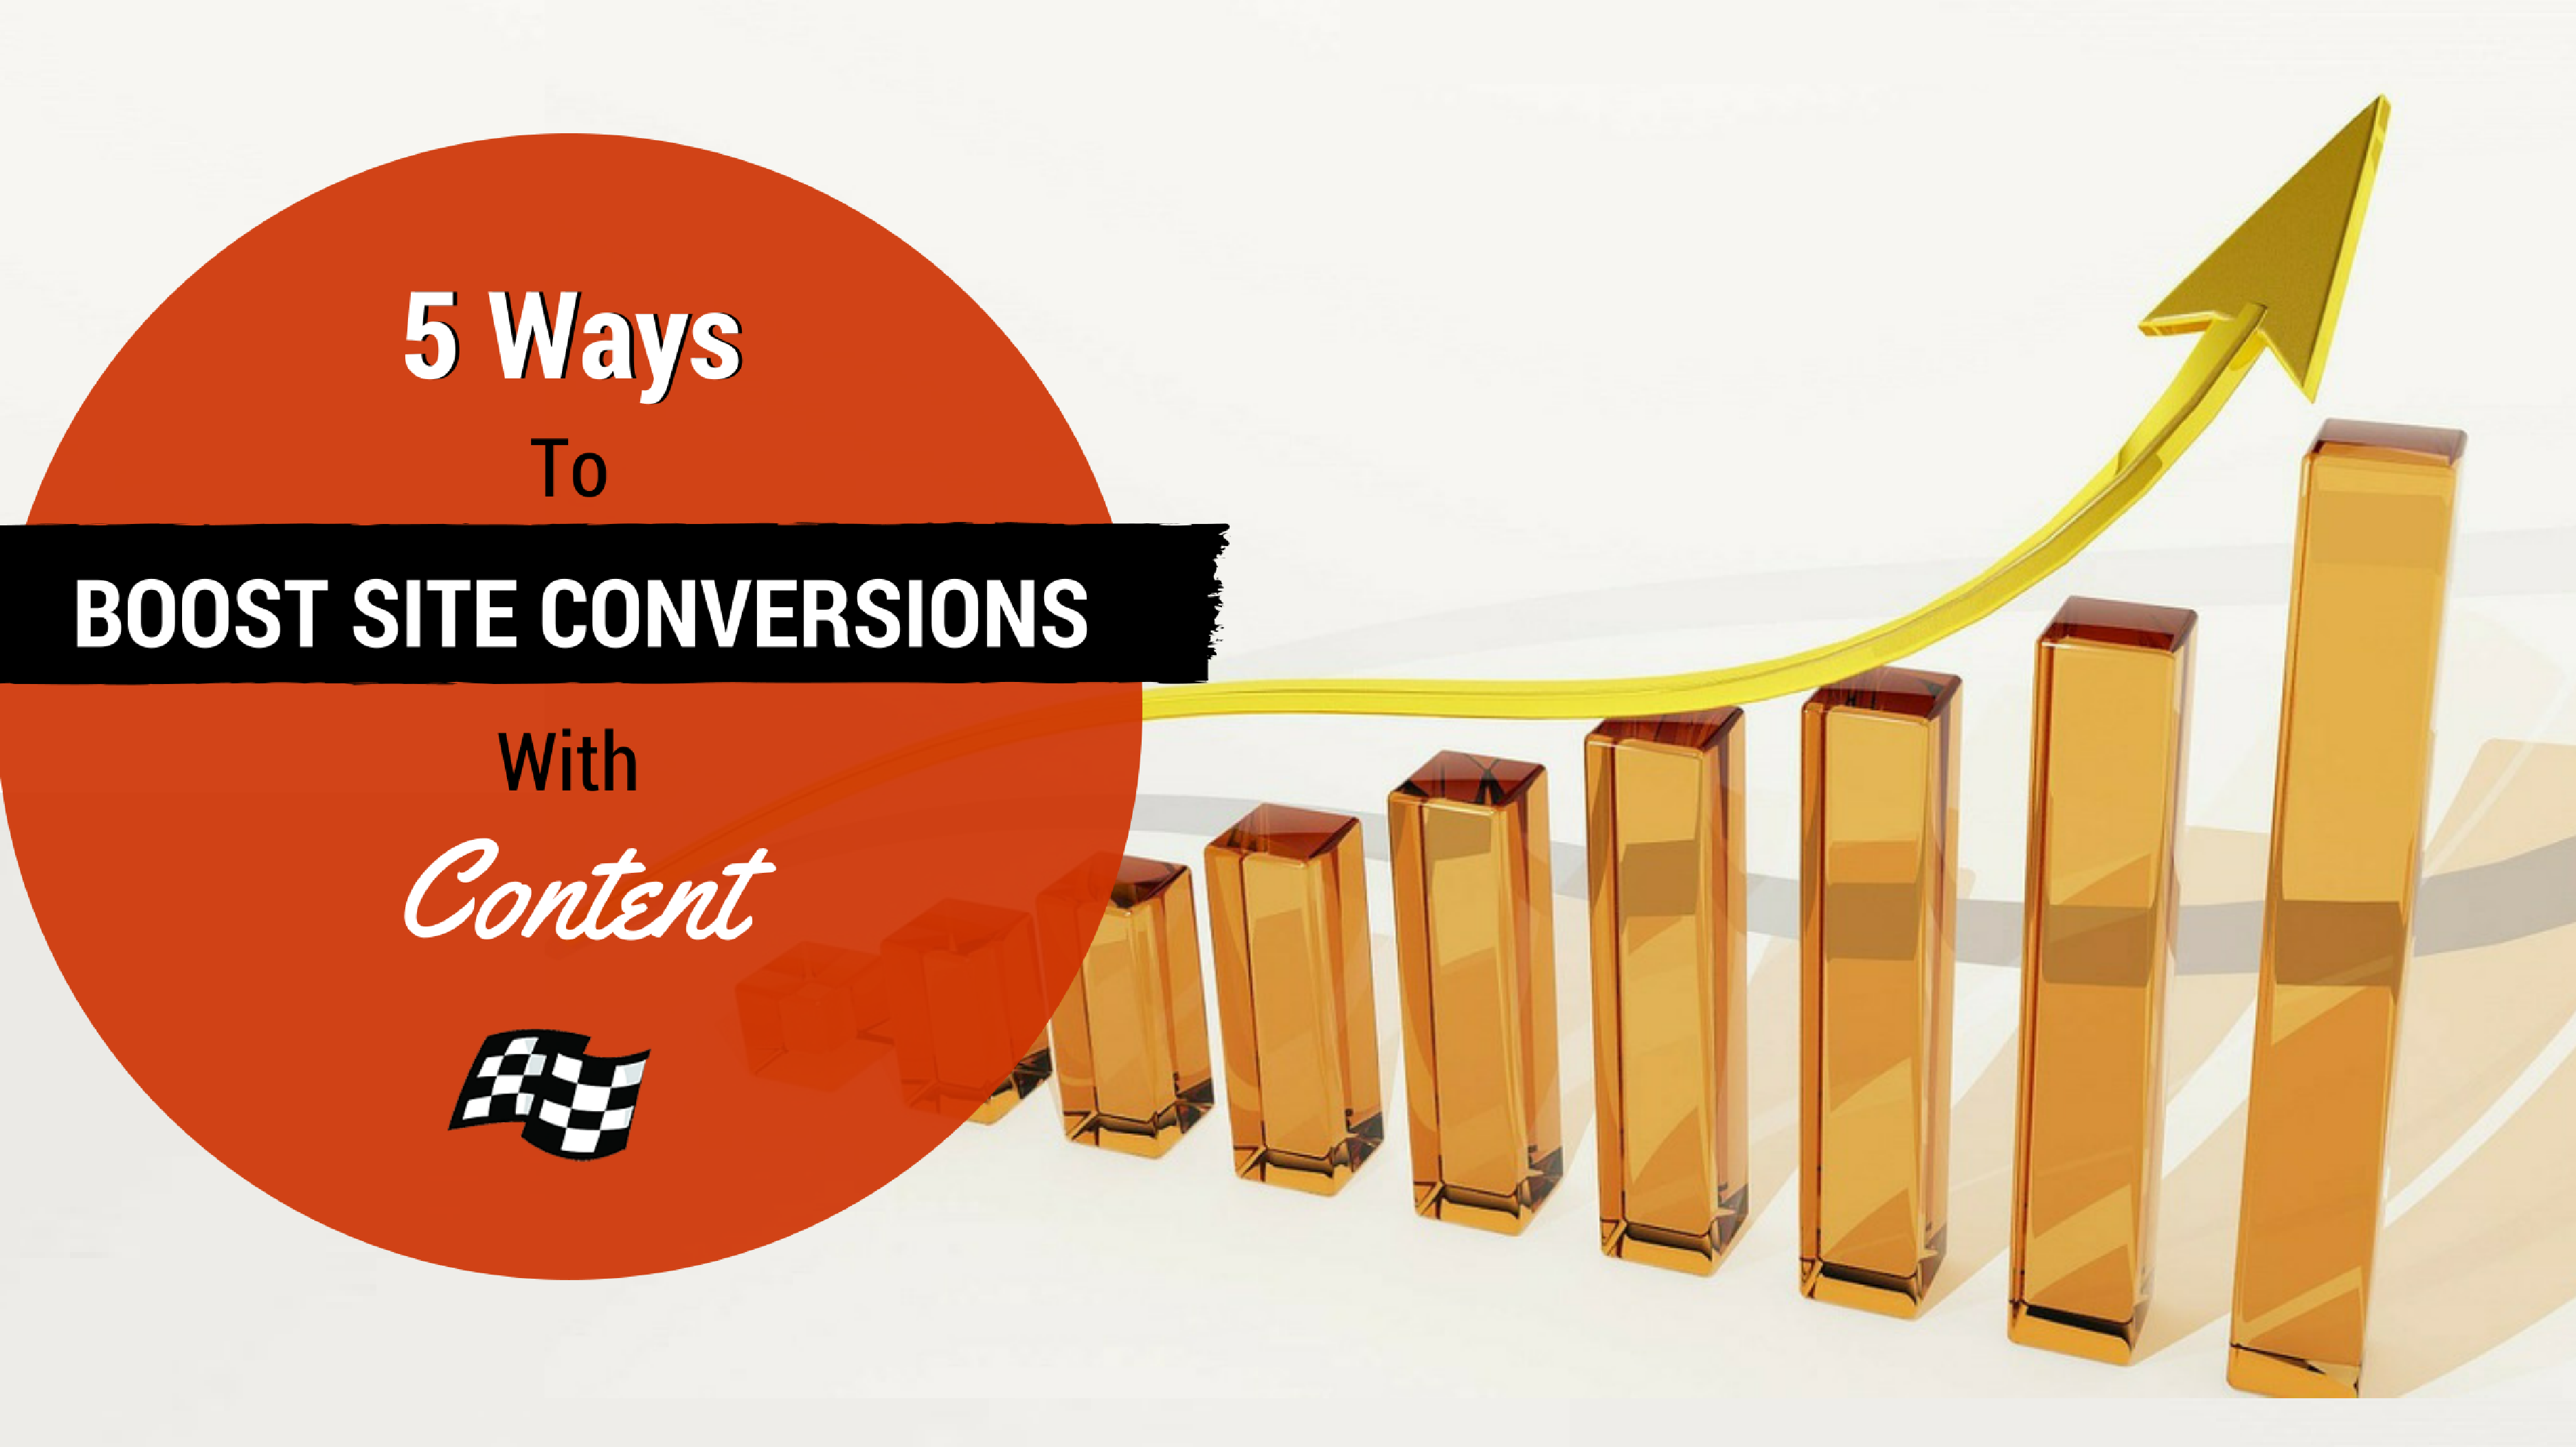 increase conversions with content